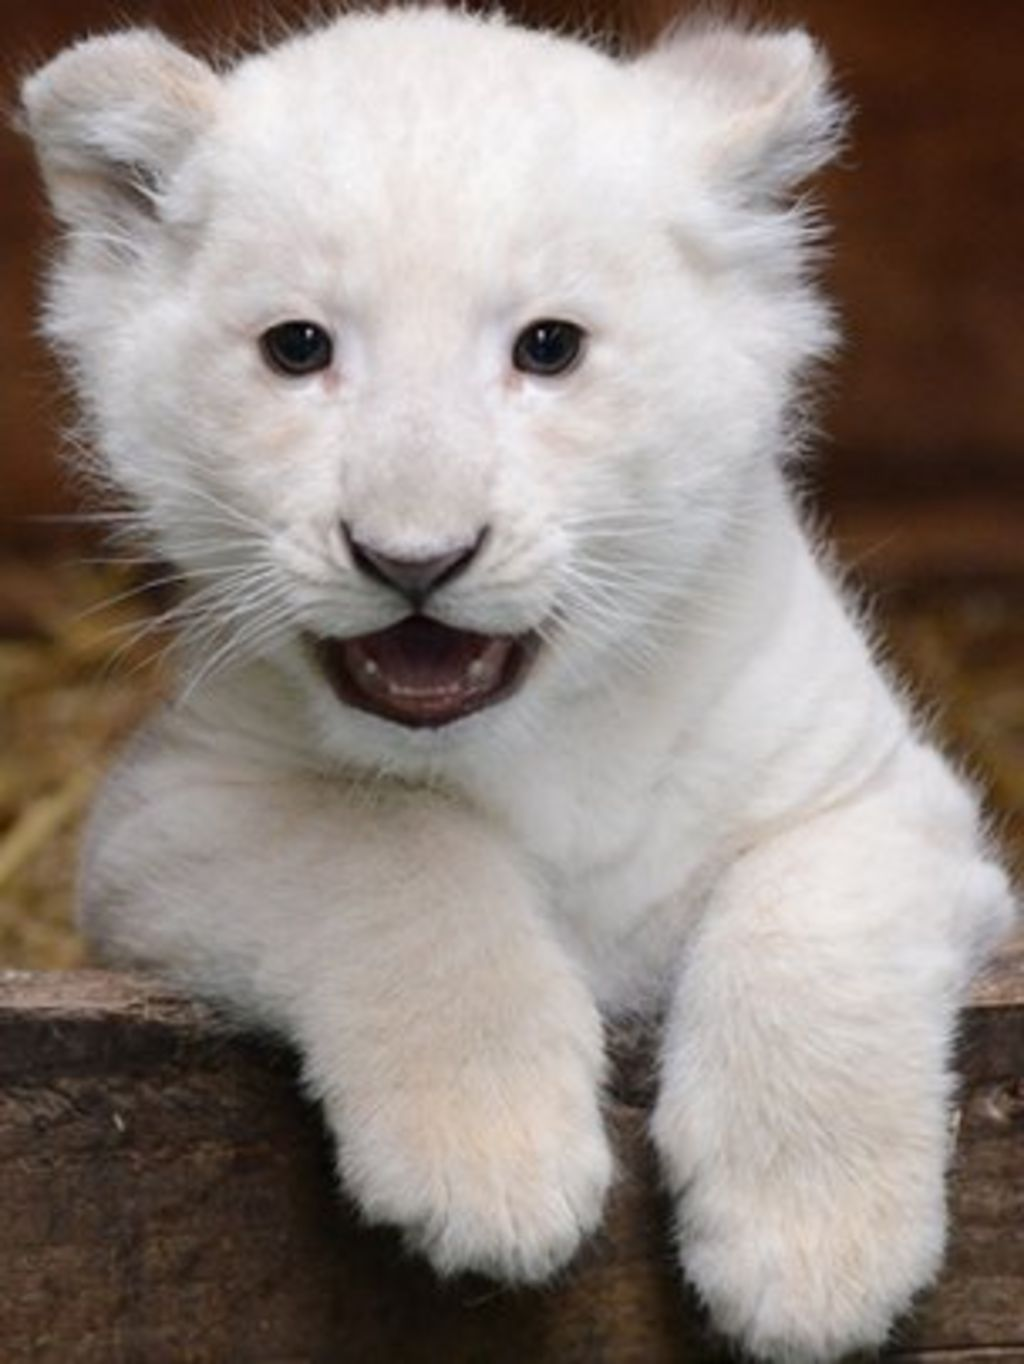 rare white lion cub appears at hertfordshire wildlife park bbc news. Black Bedroom Furniture Sets. Home Design Ideas